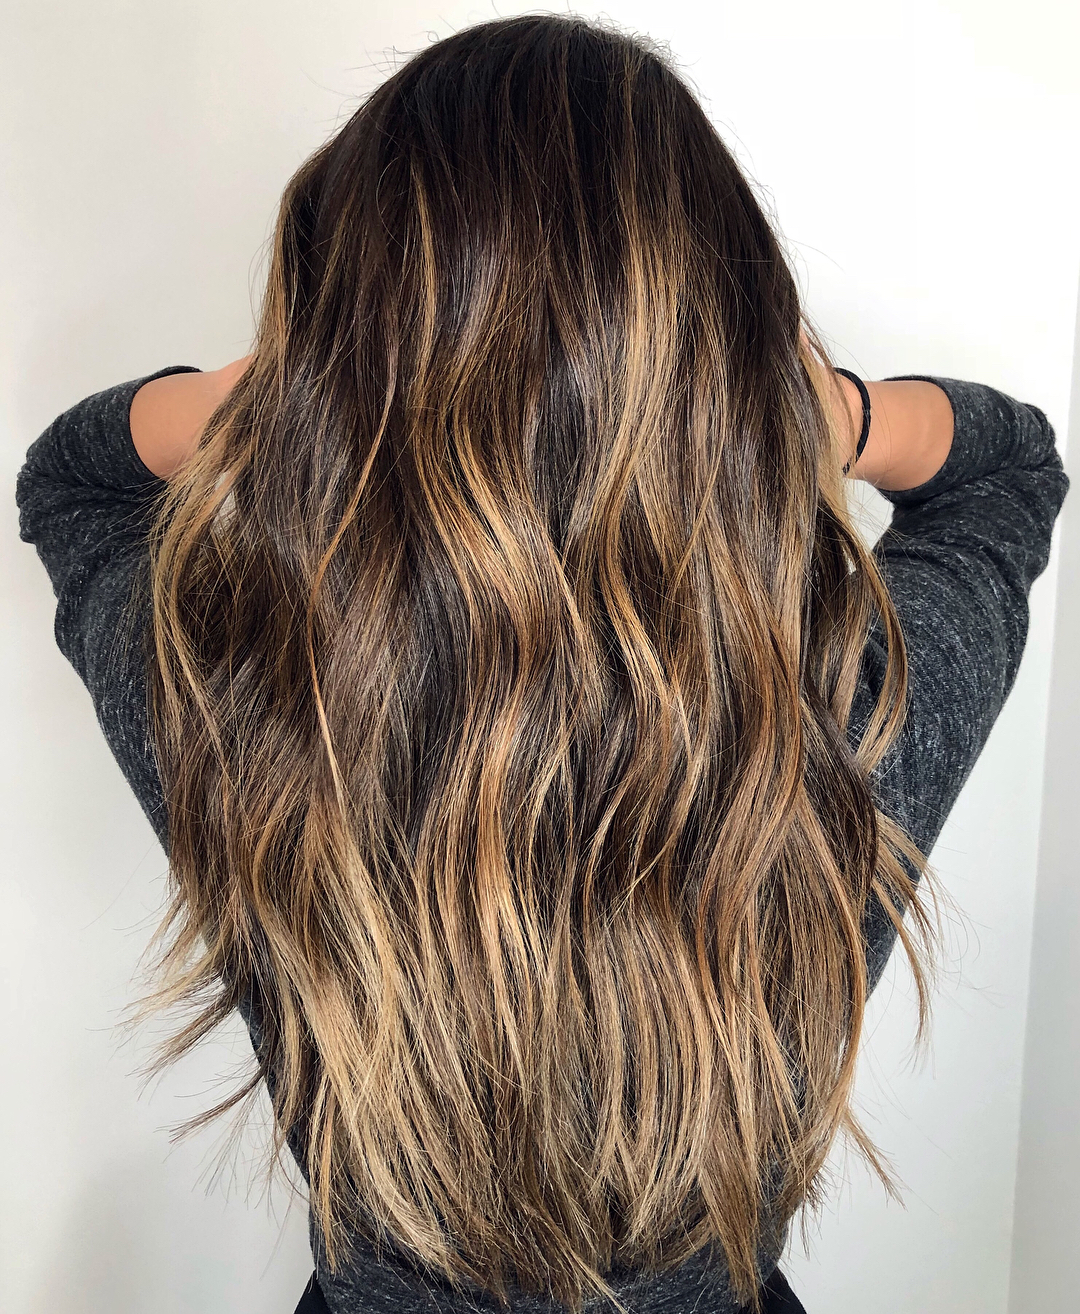 Long Hair with Honey Highlights and Light Waves